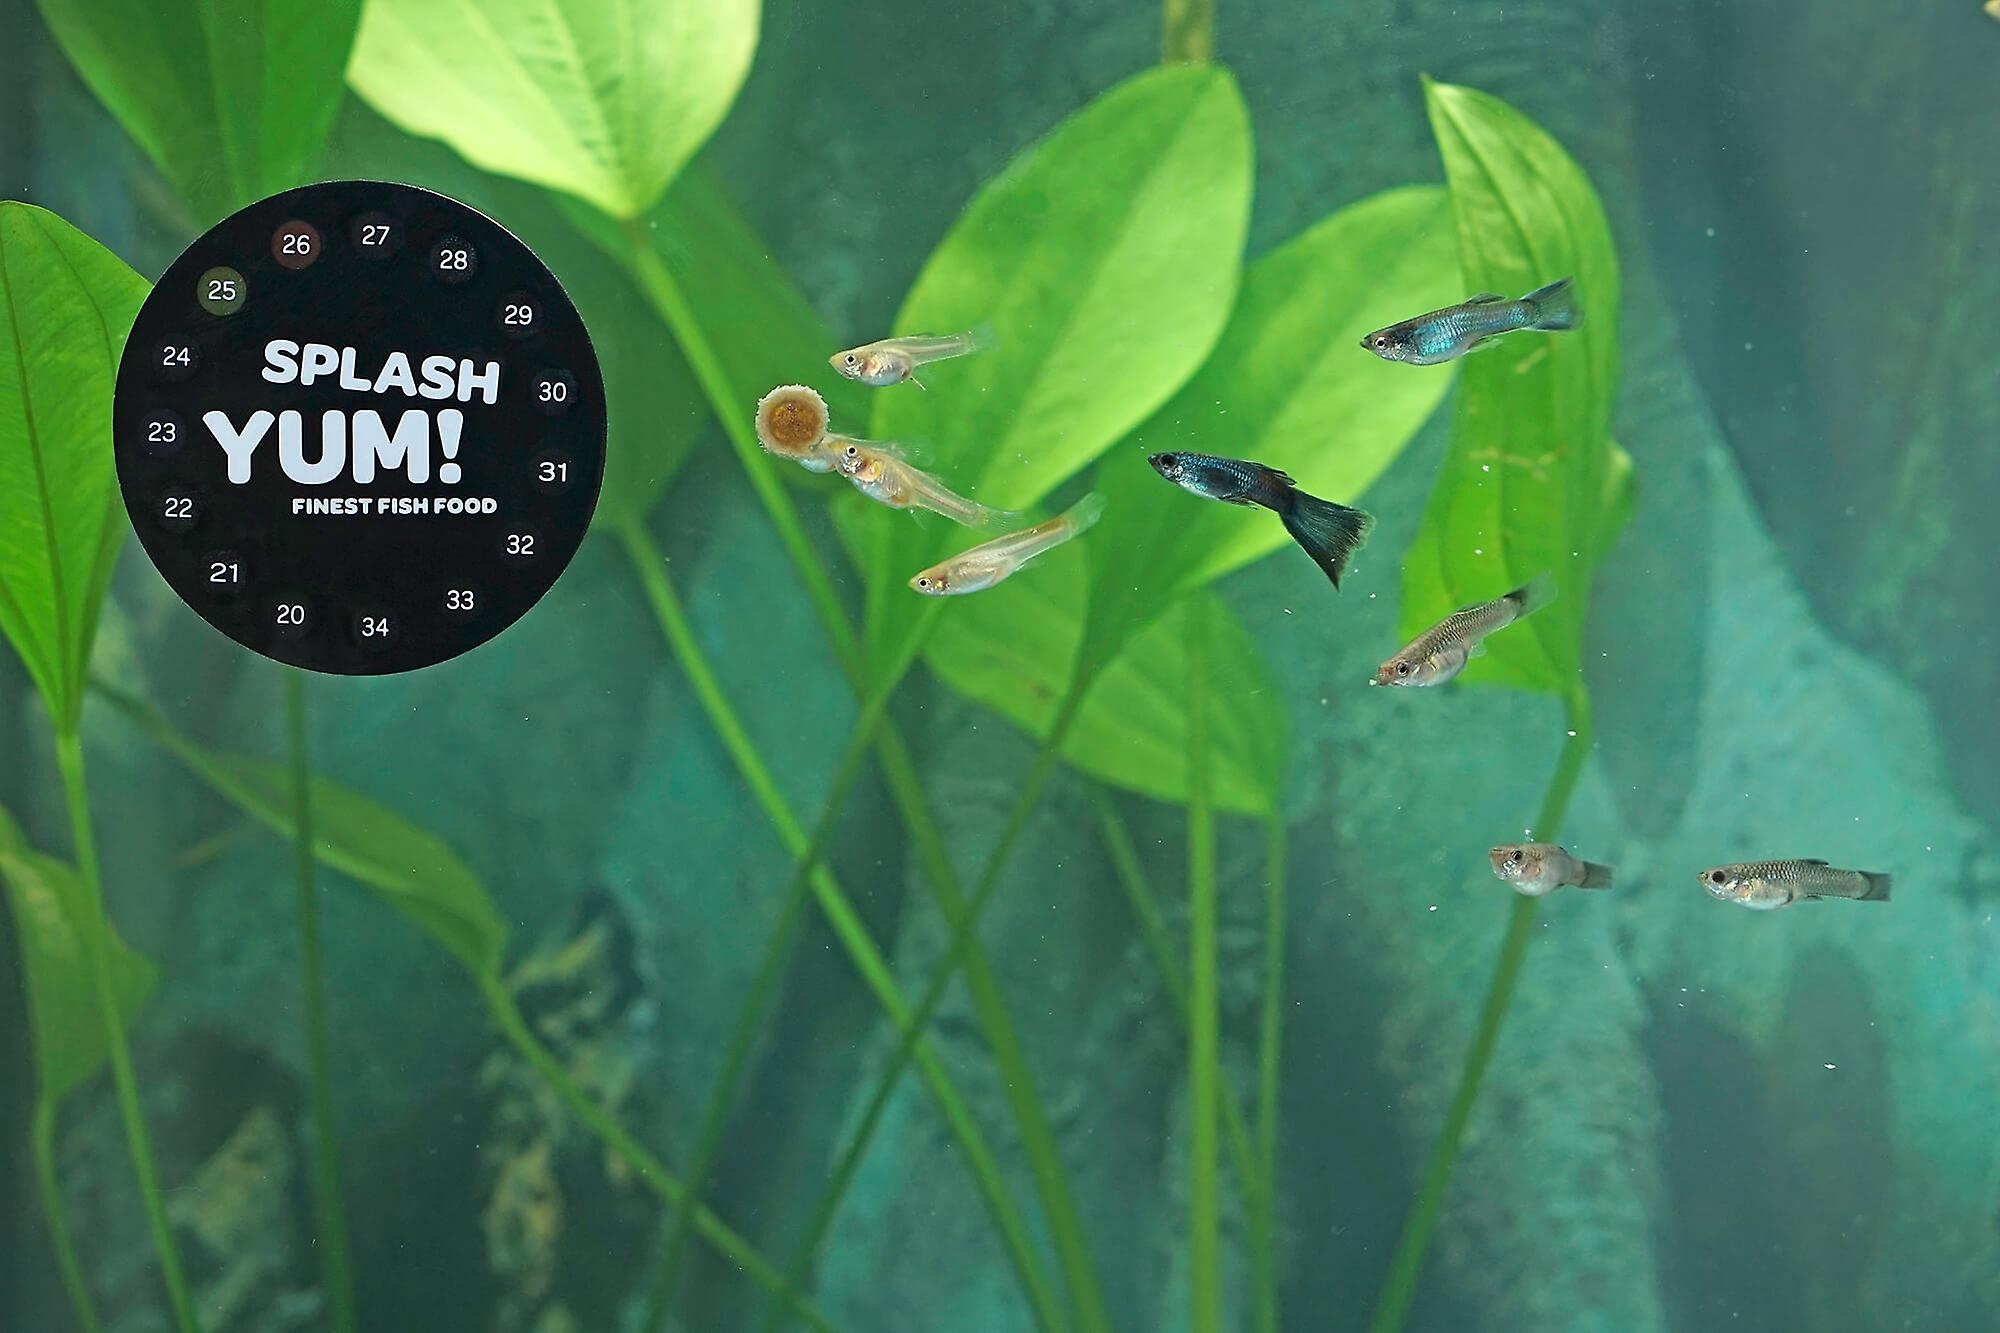 SplashYum! Aquarium Bottomfish Tabs for all ornamental fish with L-Carnitine, Lecithin, Folic Acid Ground Tablets Fish Food Tablets l Catfish Tank Catfish Barben Schmerlen Pleco Saugwelse